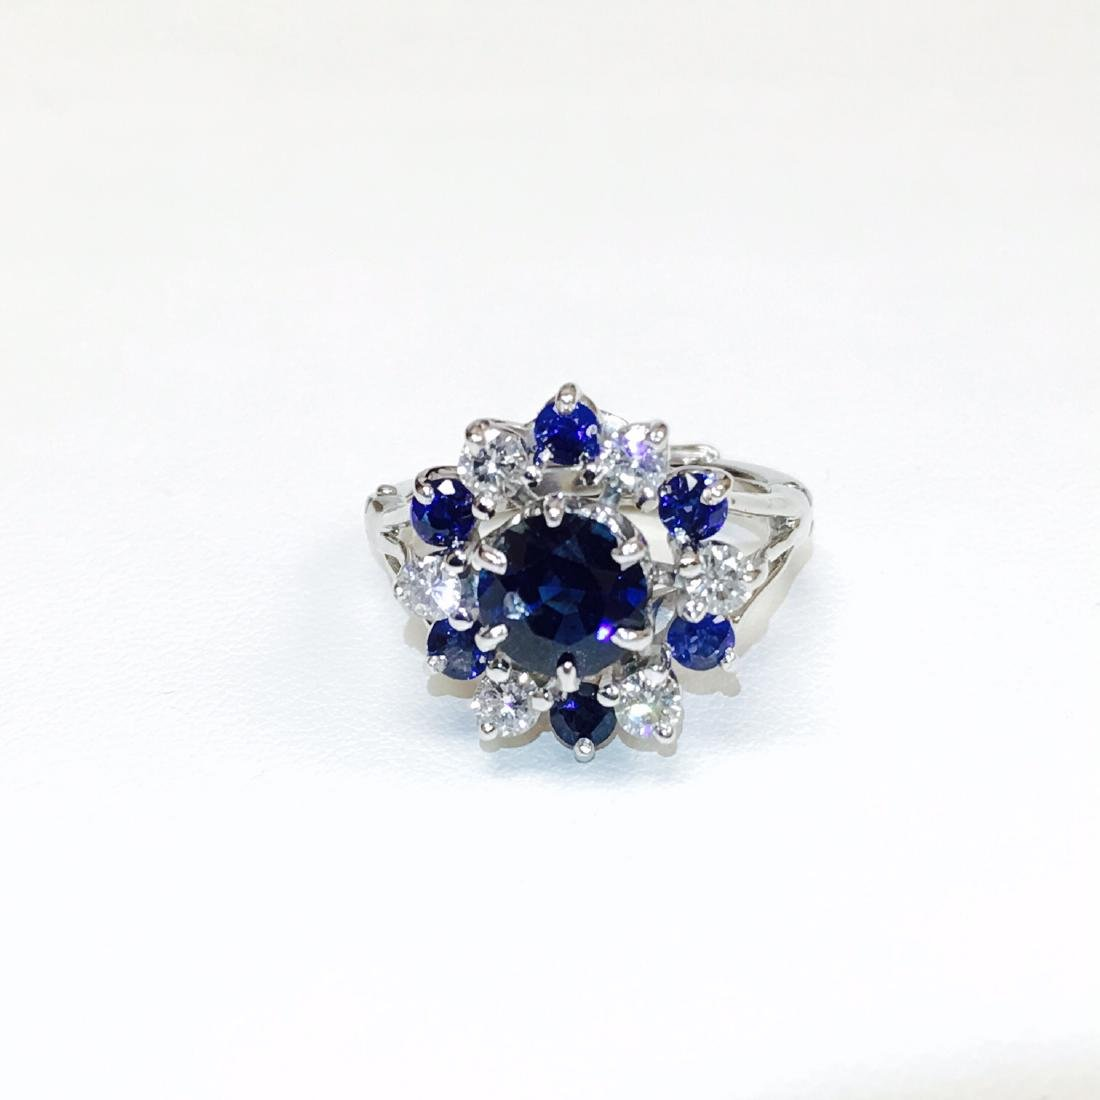 4.10 Carat Natural Blue Sapphire and Diamond Ring - 2